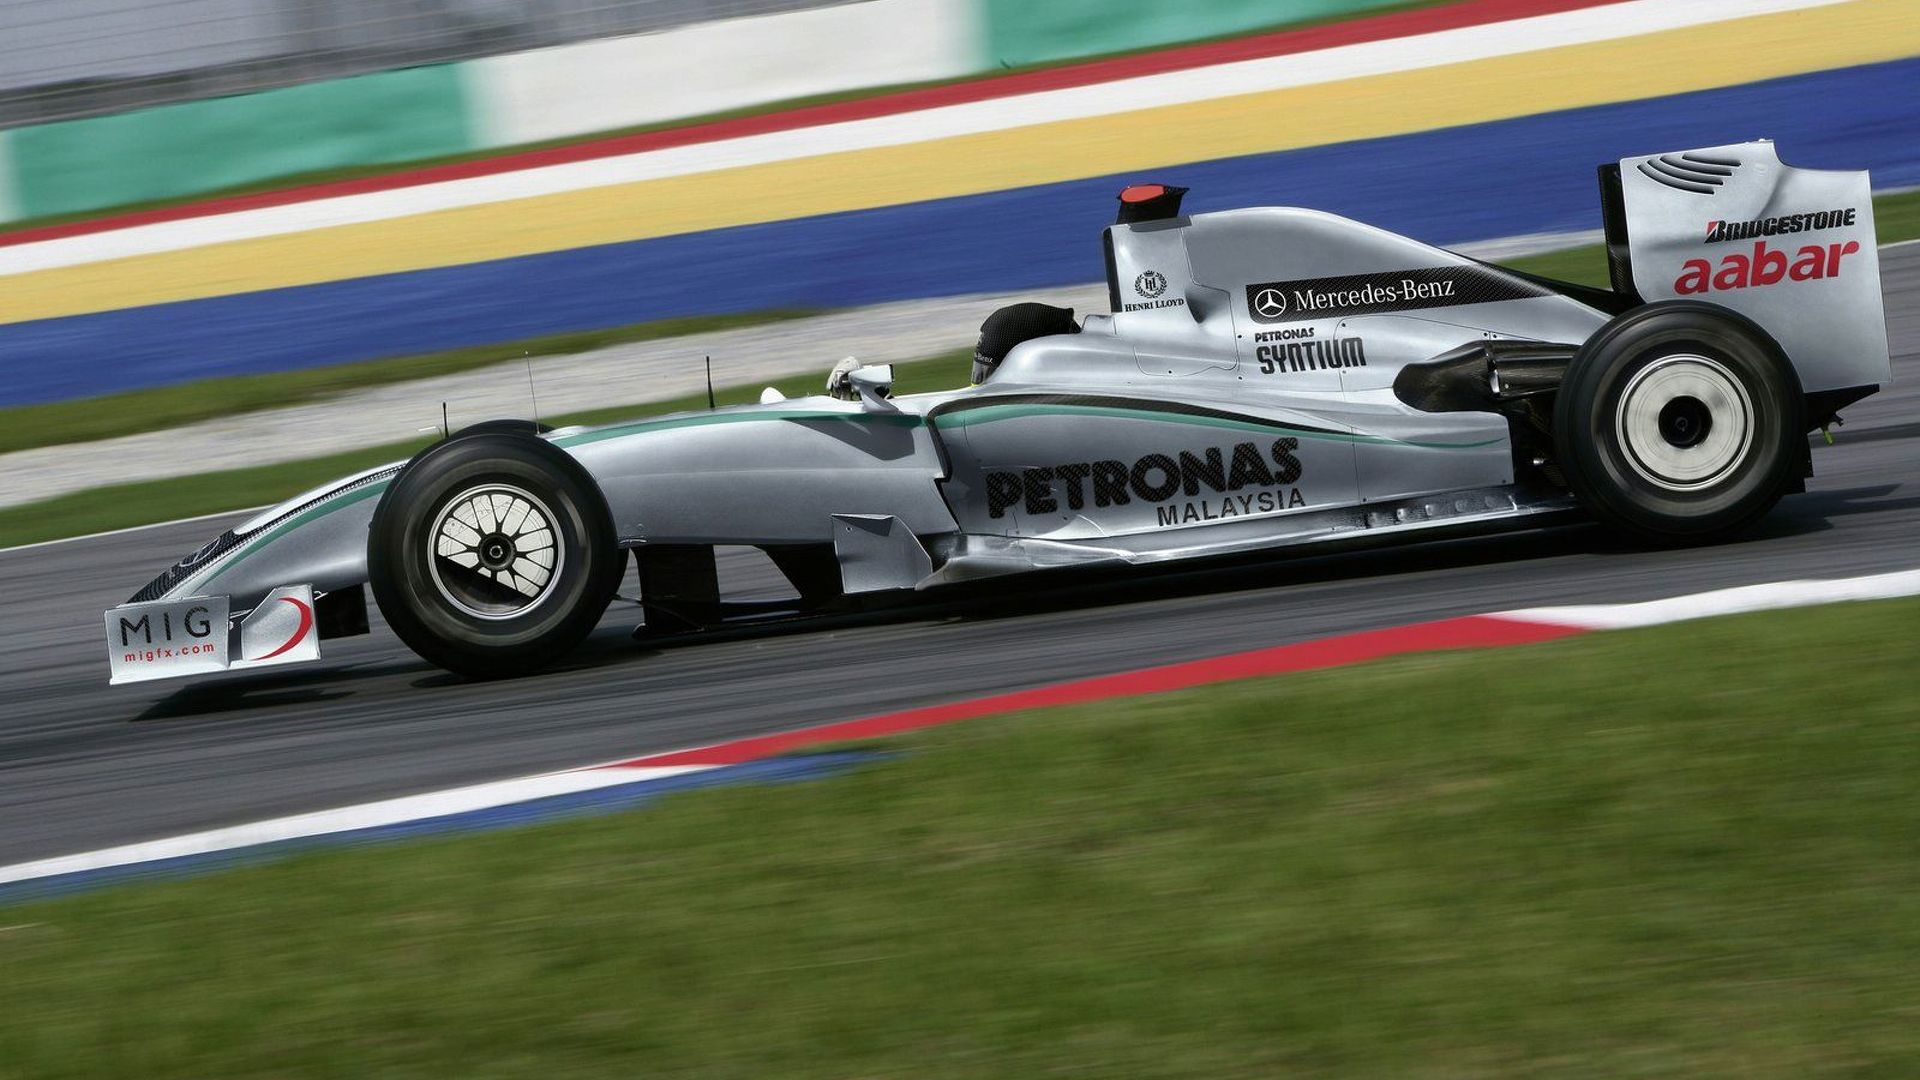 2010 Mercedes-Petronas RB1 to be launched January 25 - report